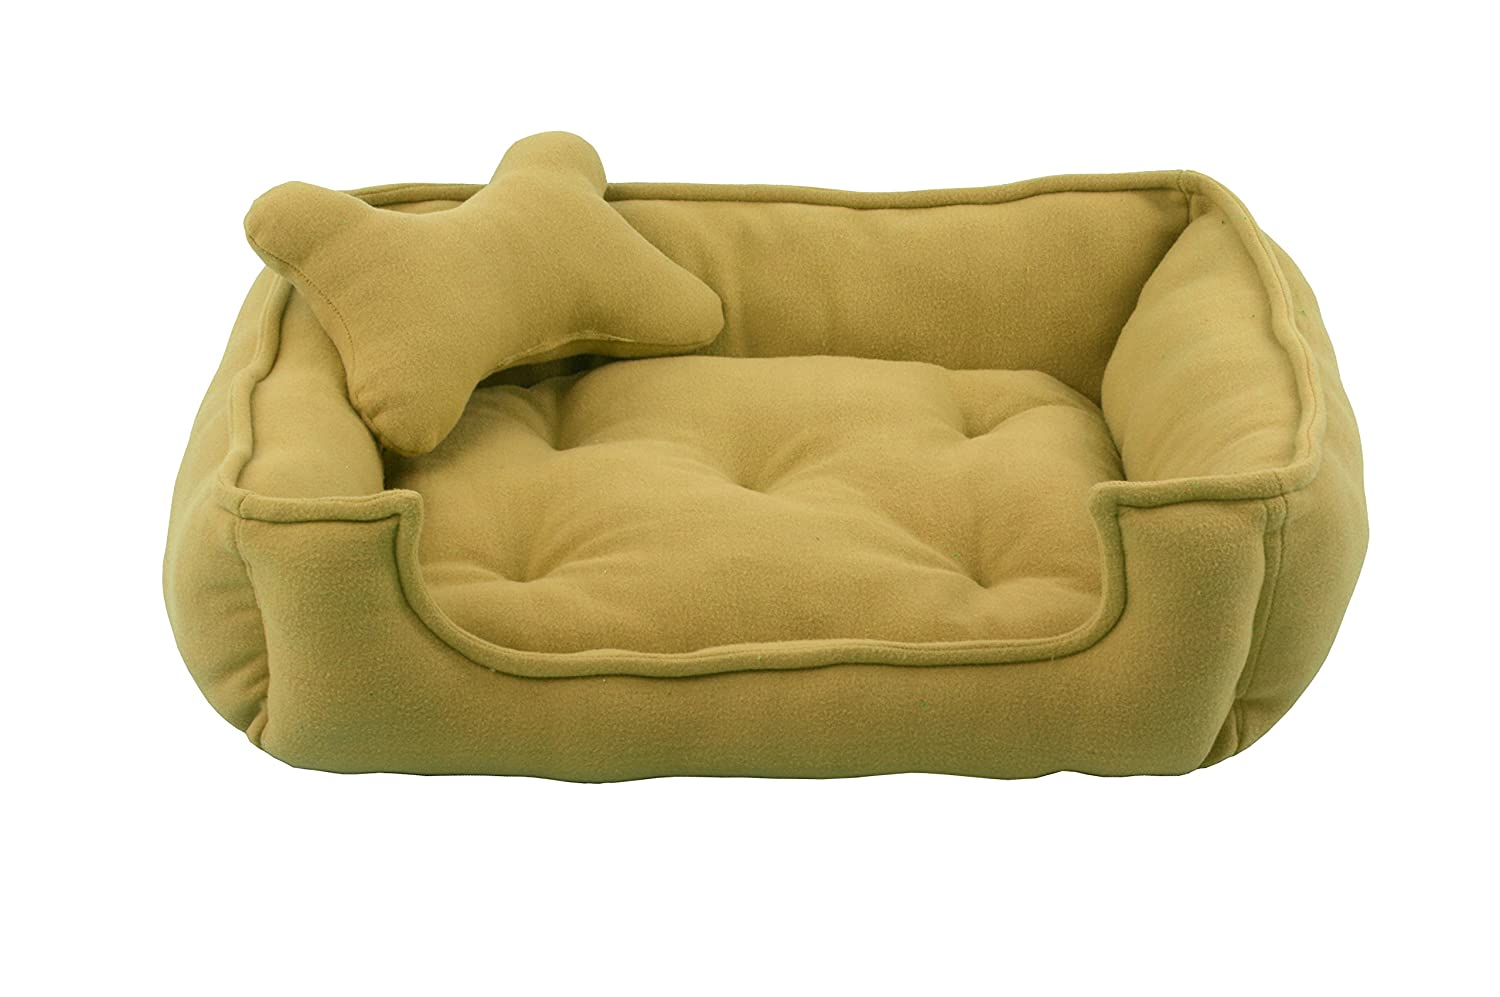 Fluffy's Luxurious Reversible Dog/Cat Bed